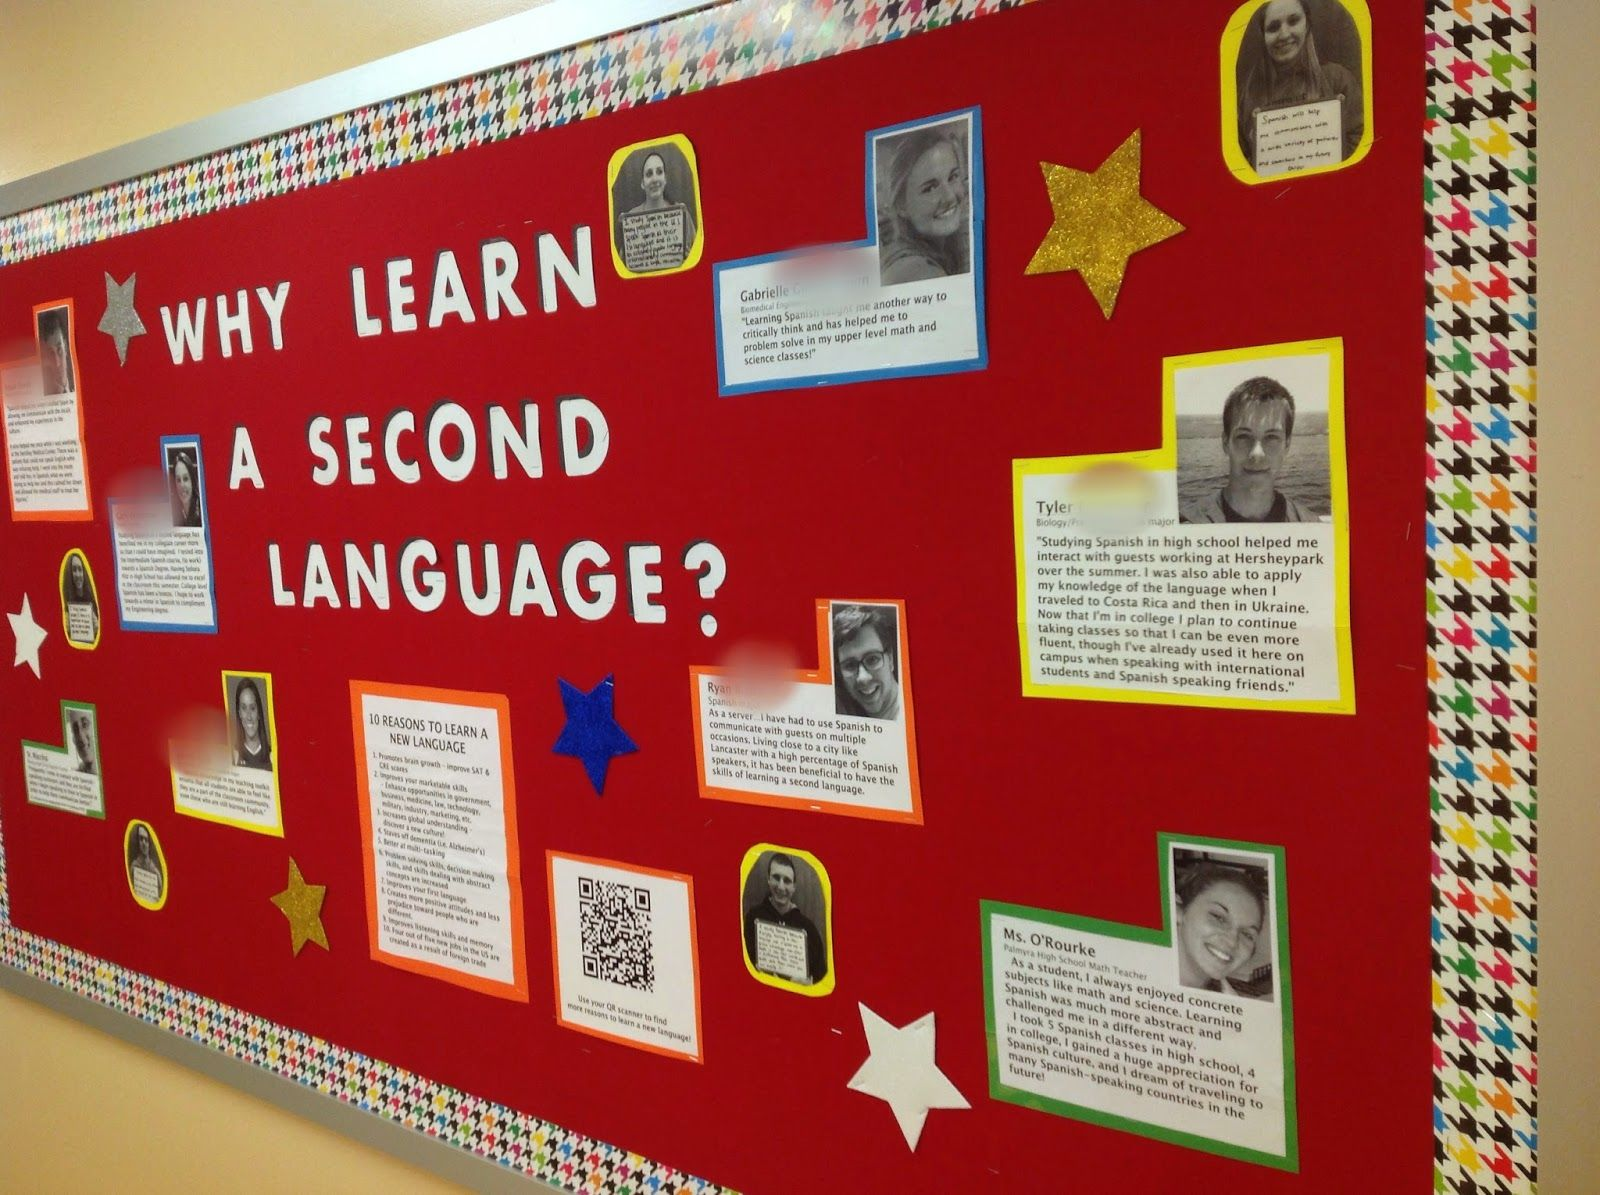 Spanish 1 Classroom Decorations : Why learn a second language bulletin board from